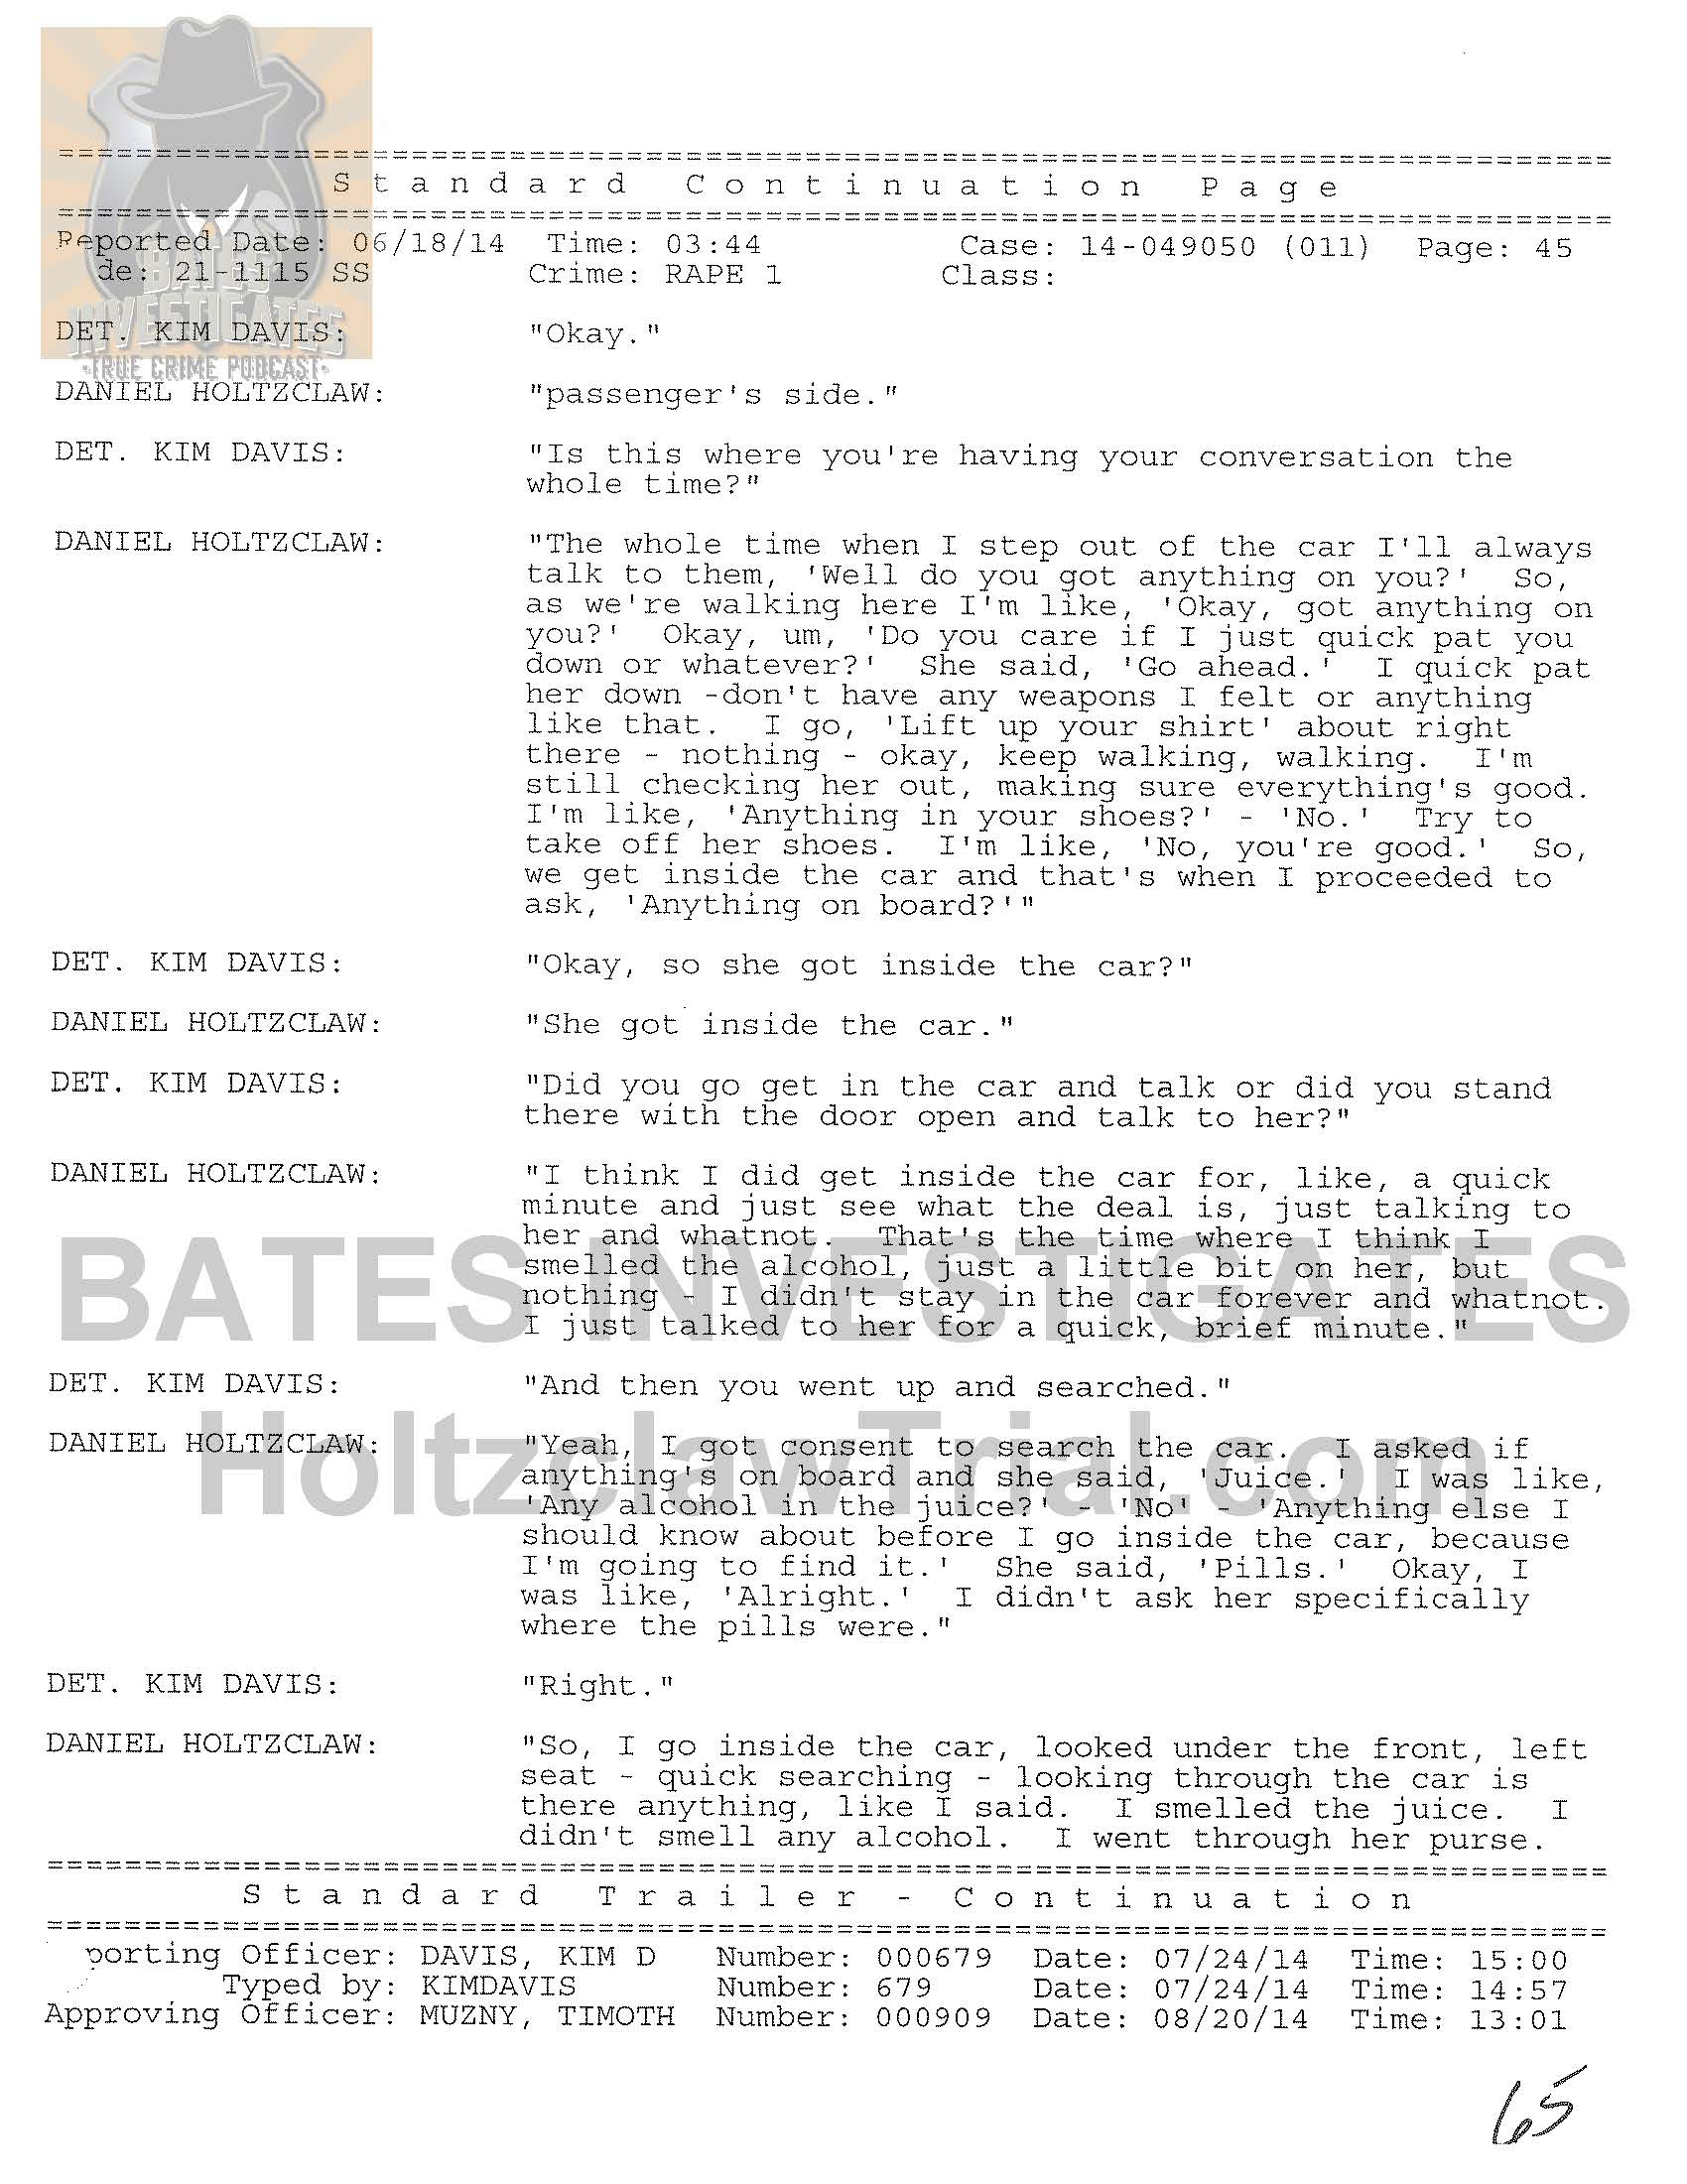 Holtzclaw Interrogation Transcript - Ep02 Redacted_Page_45.jpg